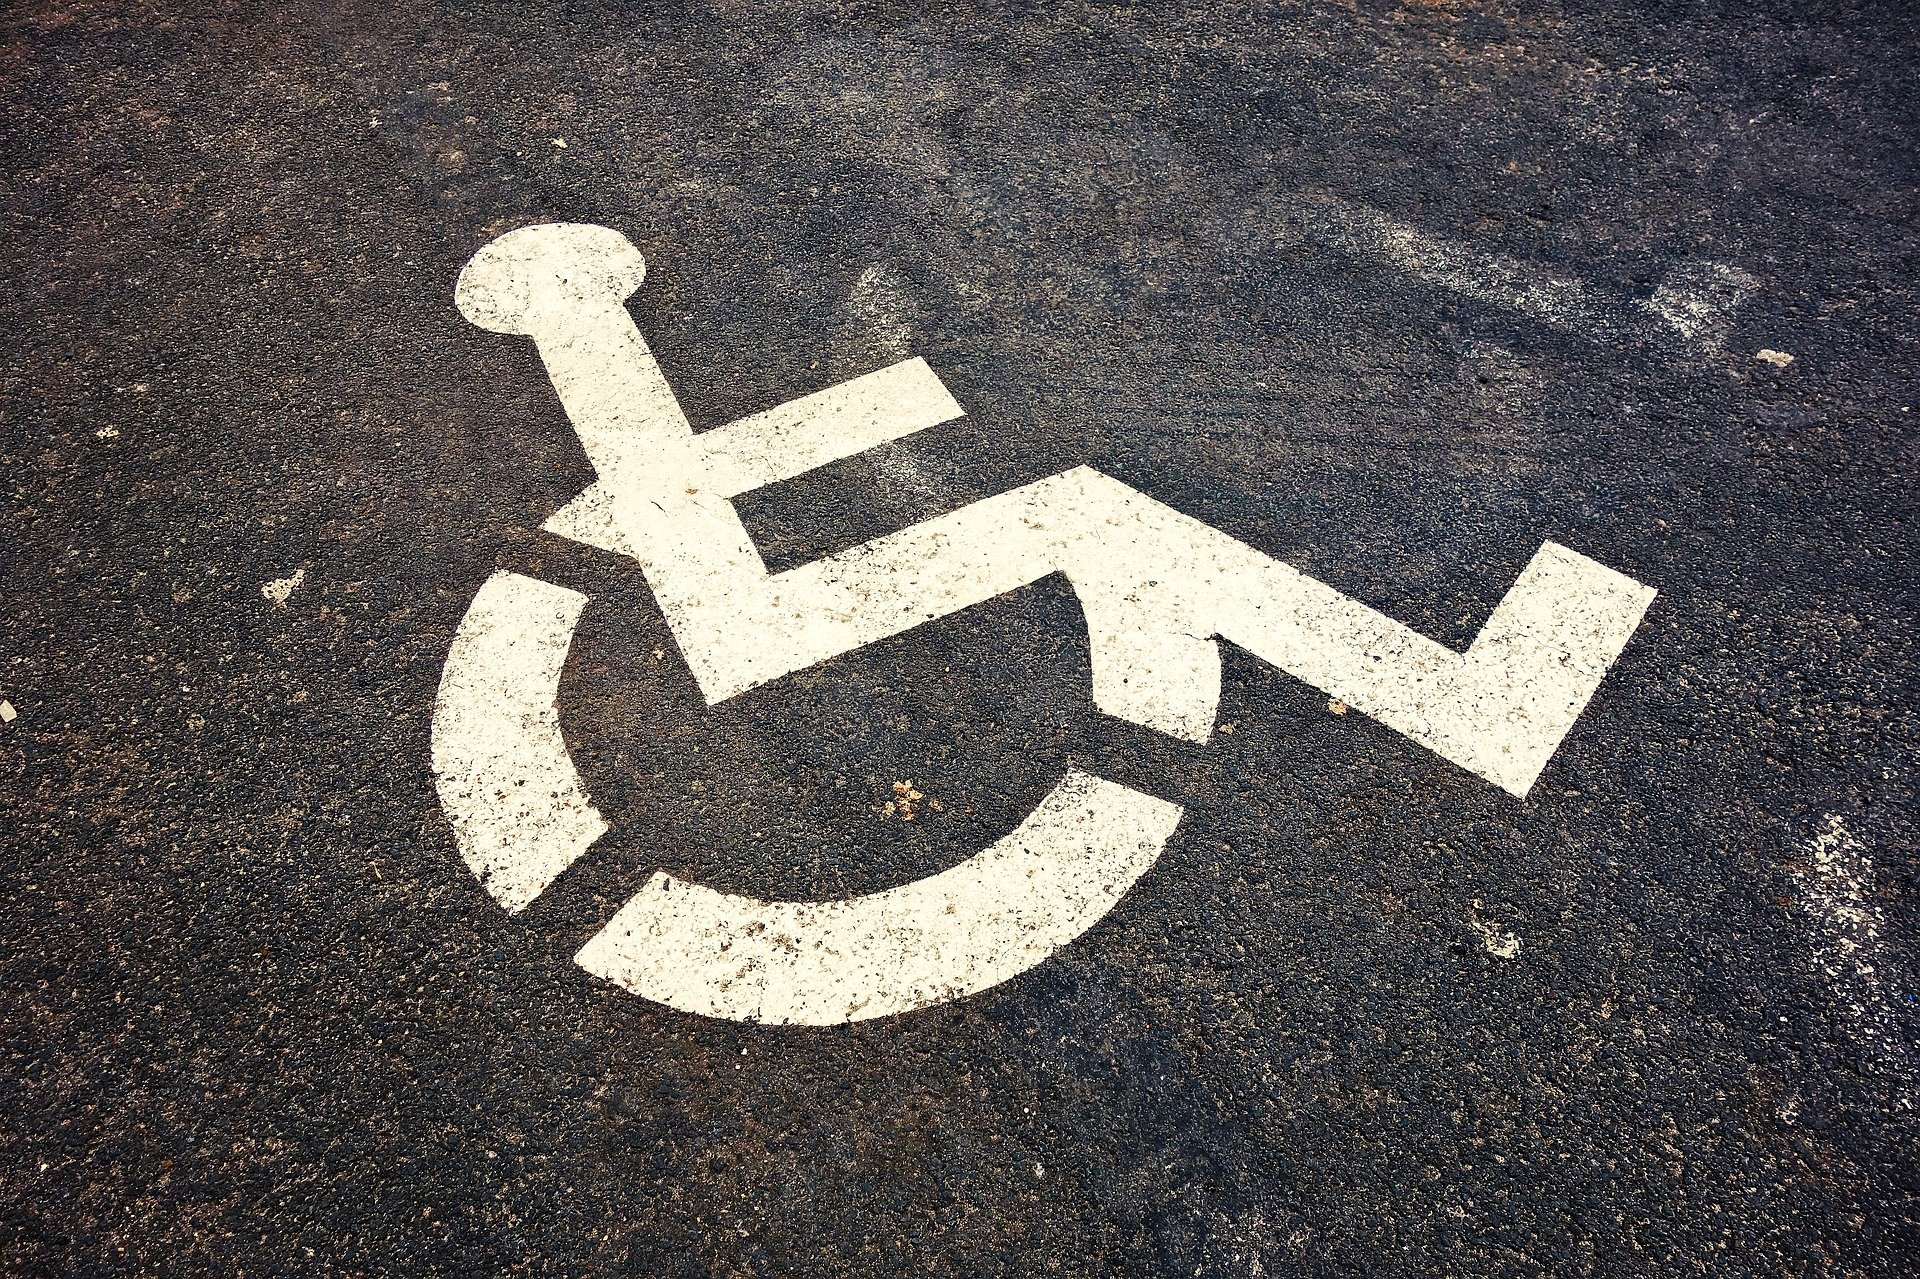 Close up of the International Symbol of Access painted in white on asphalt